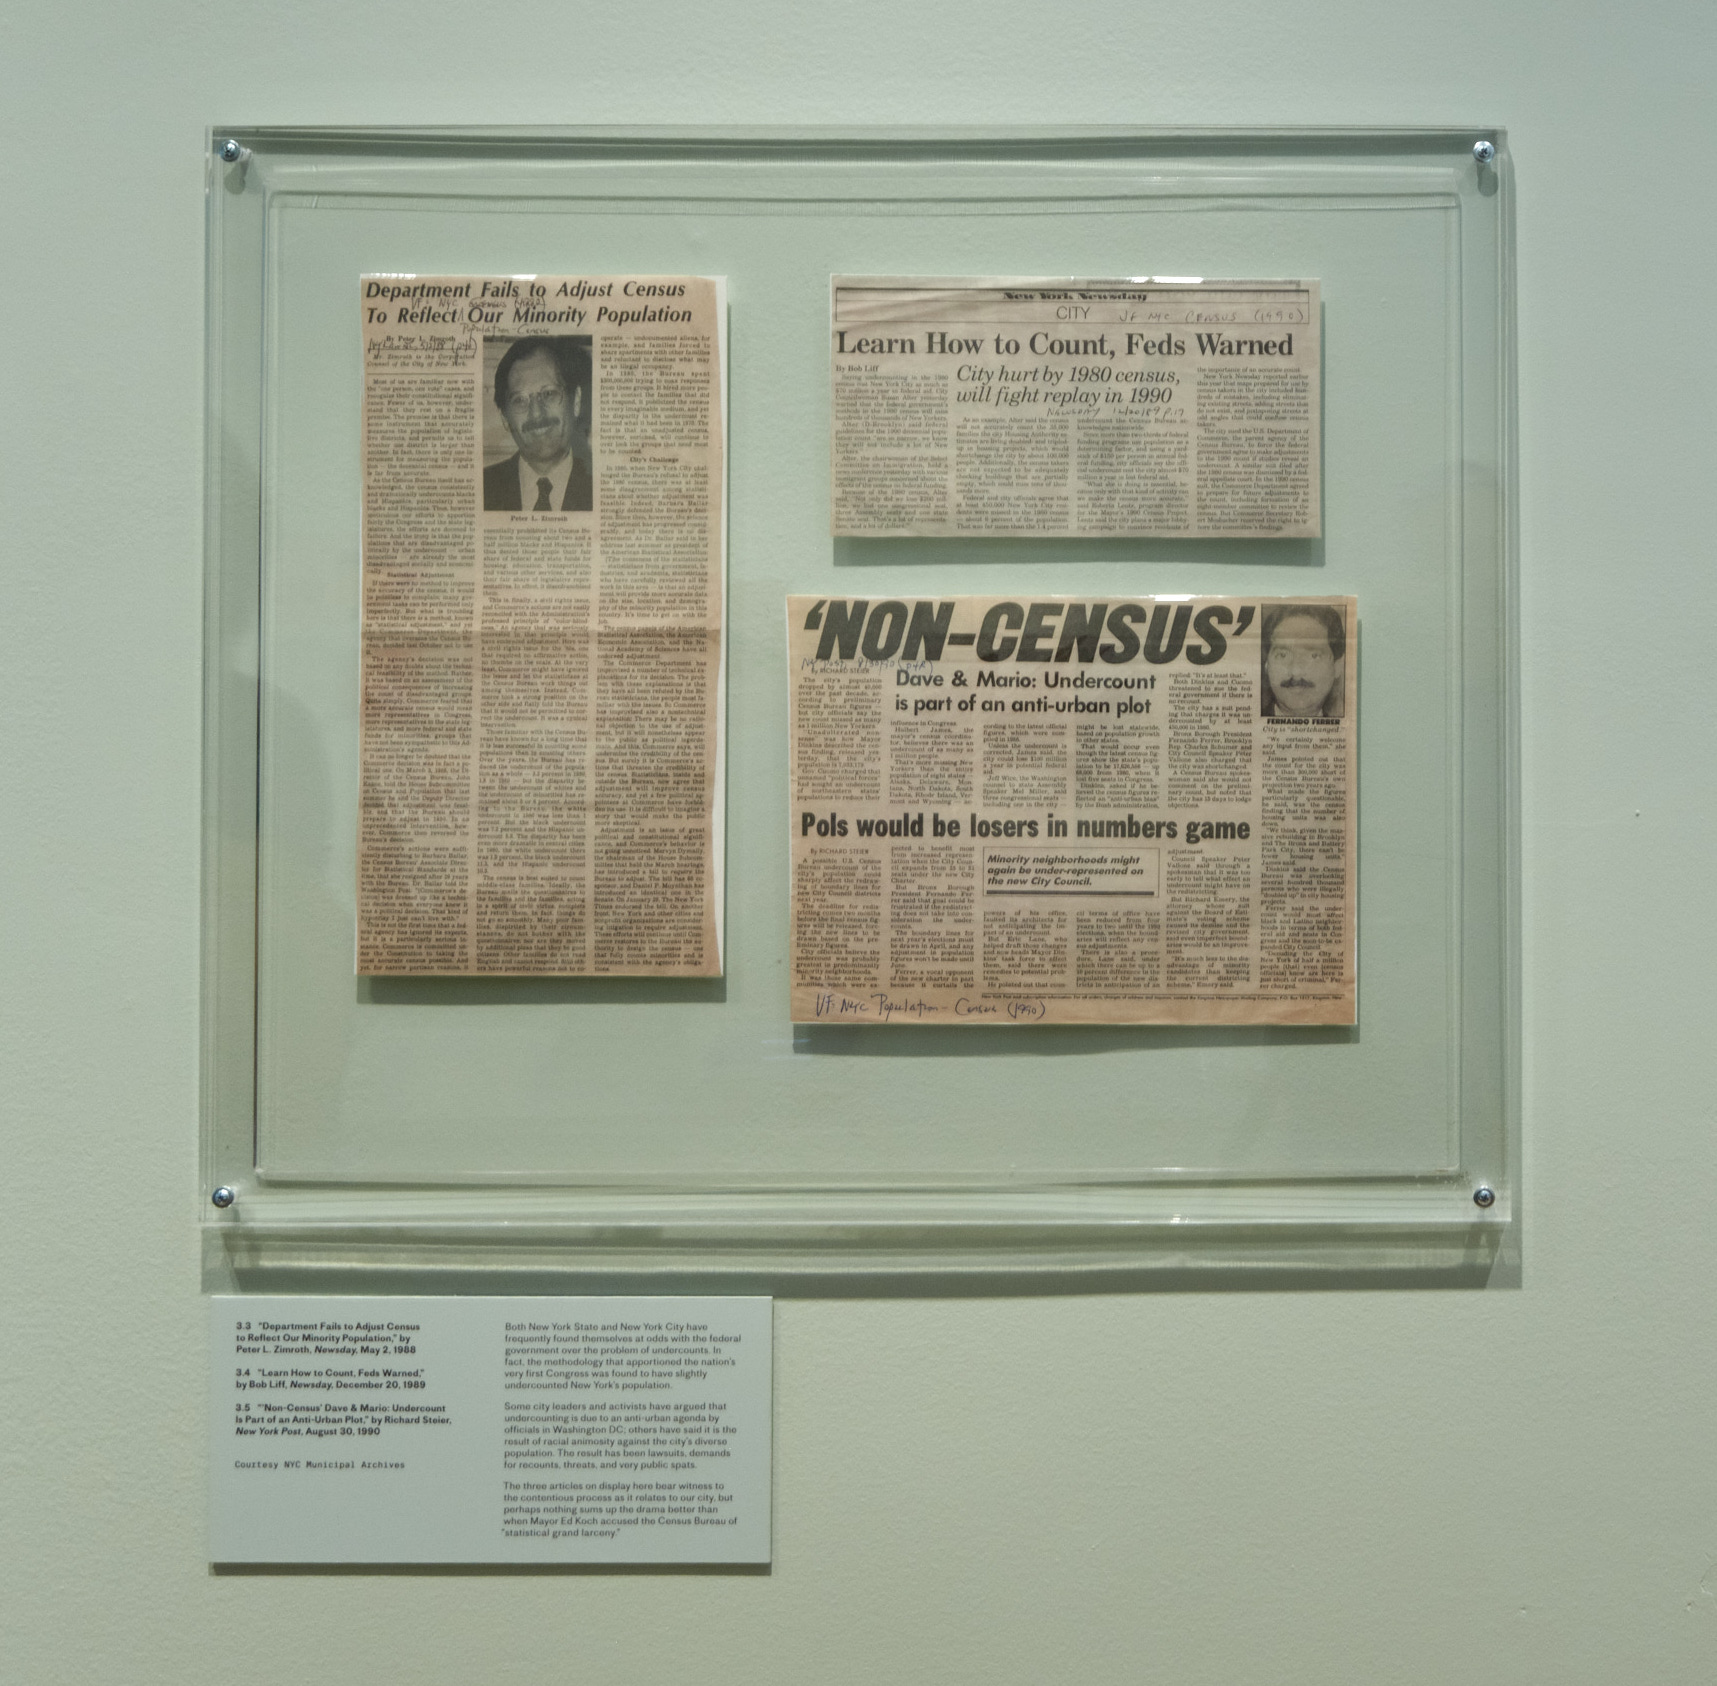 Newspaper clippings with headlines about New York being undercounted in the census.